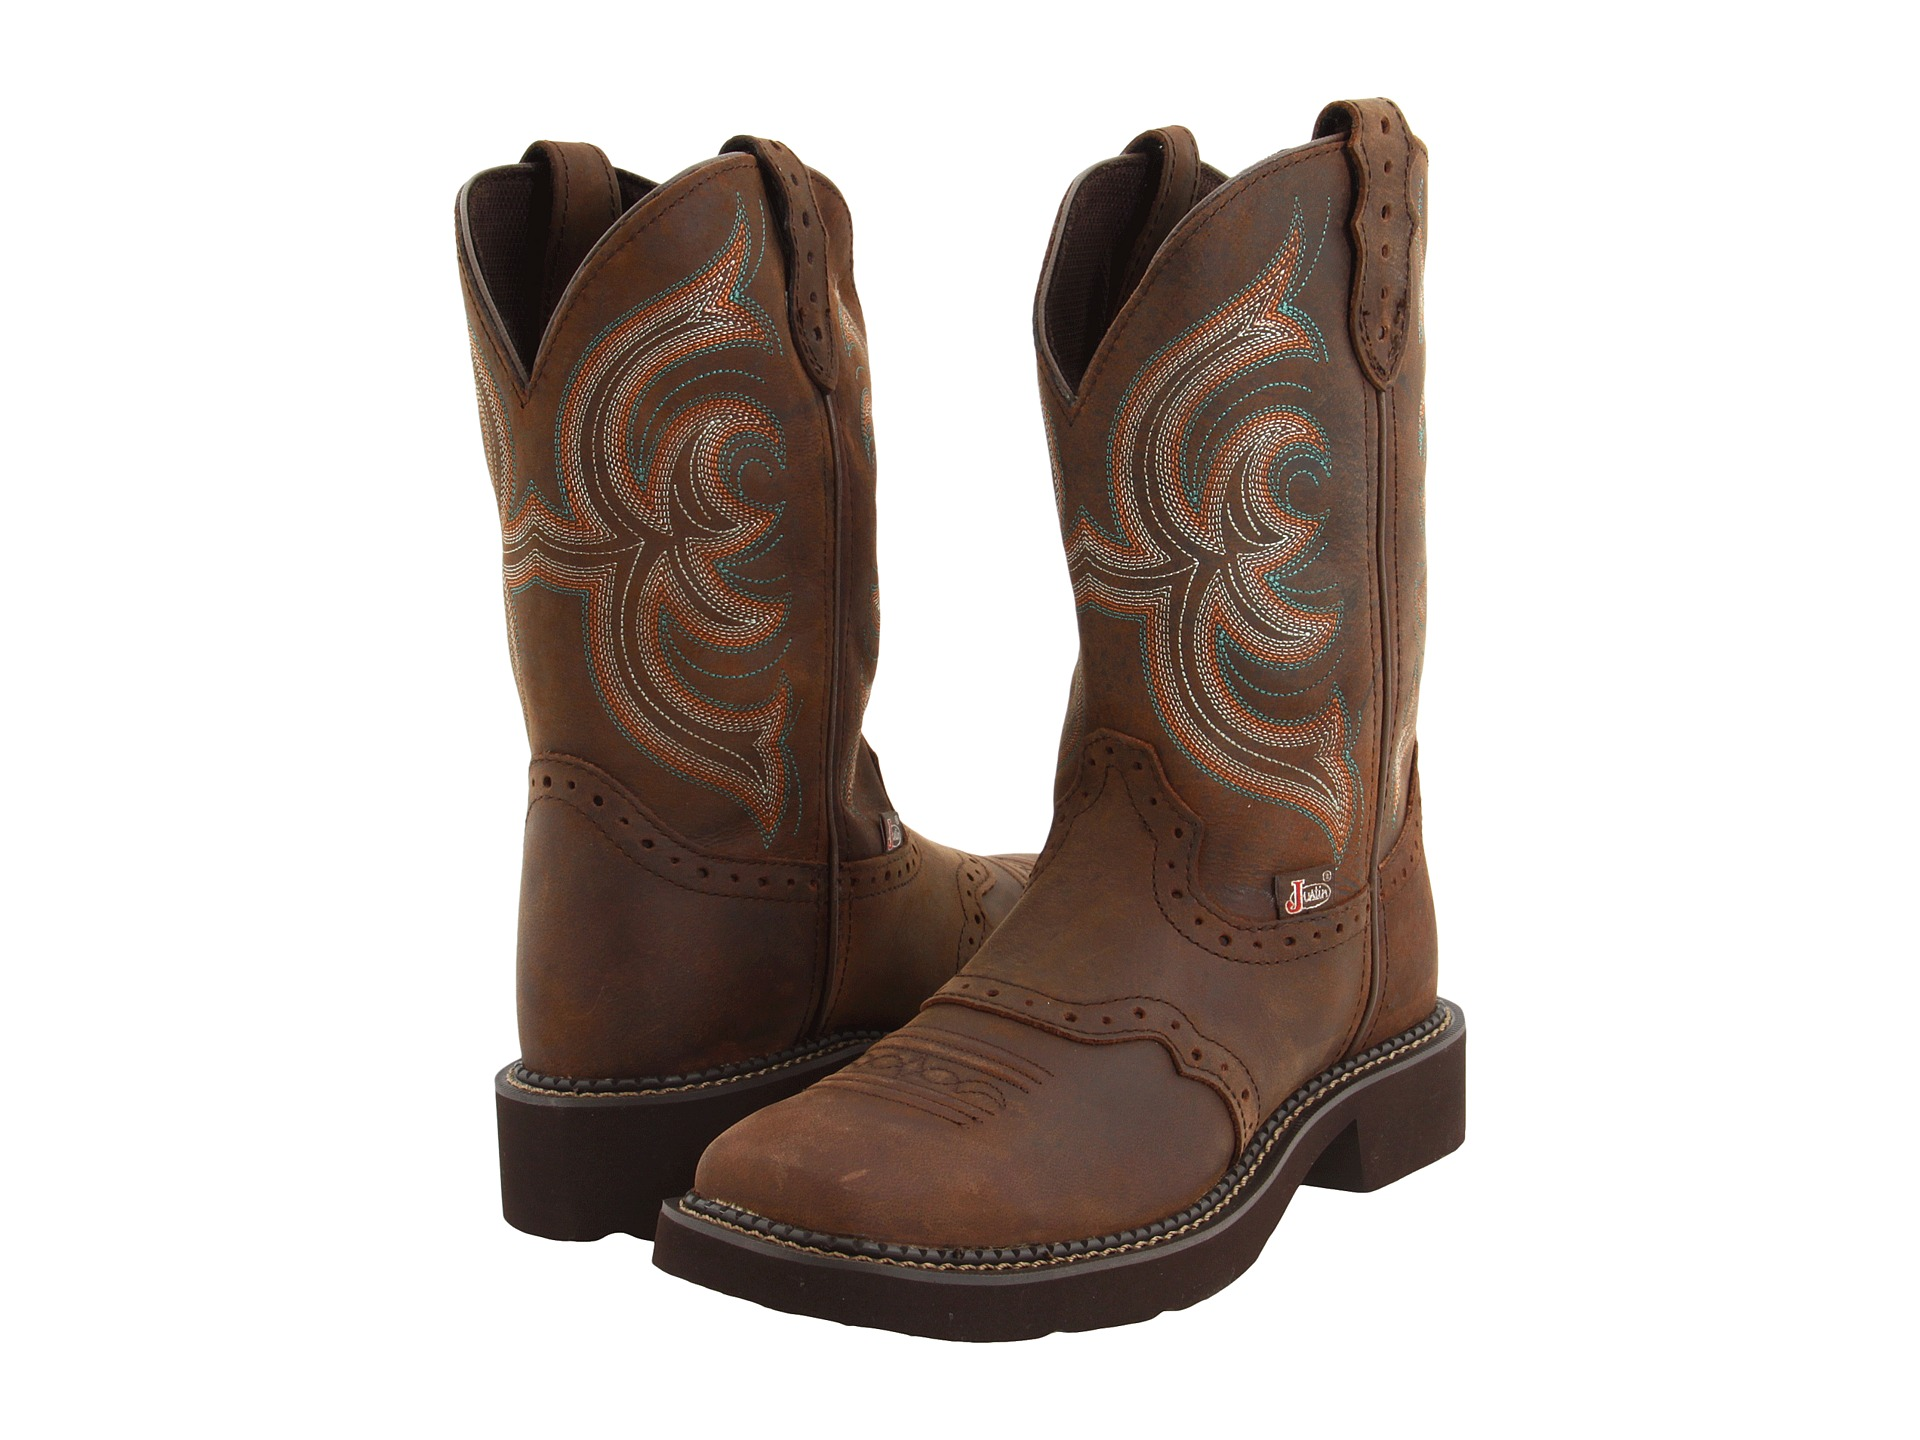 Model Justin And Lucchese This Is The Place To Take The Whole Family, Since Cavenders Carries Boots For Infants, Children, Men And Women Youll Have Your Choice Of Boot In Traditional Toe, Snip Toe, Squa